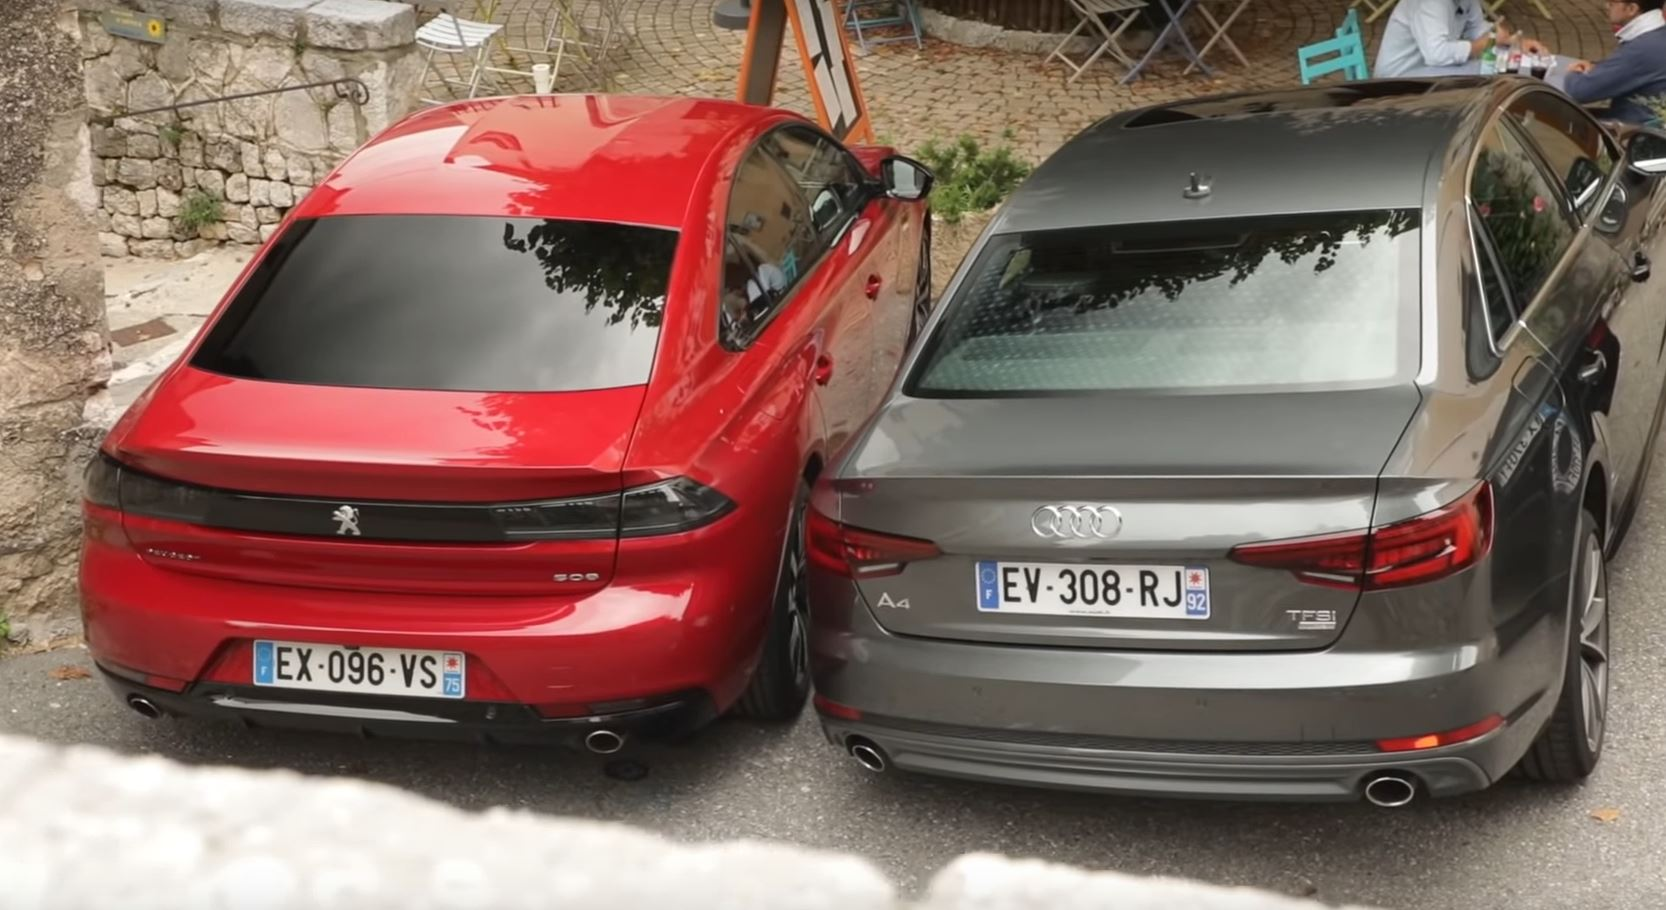 New Peugeot 508 Takes On Audi A4 In Franco German